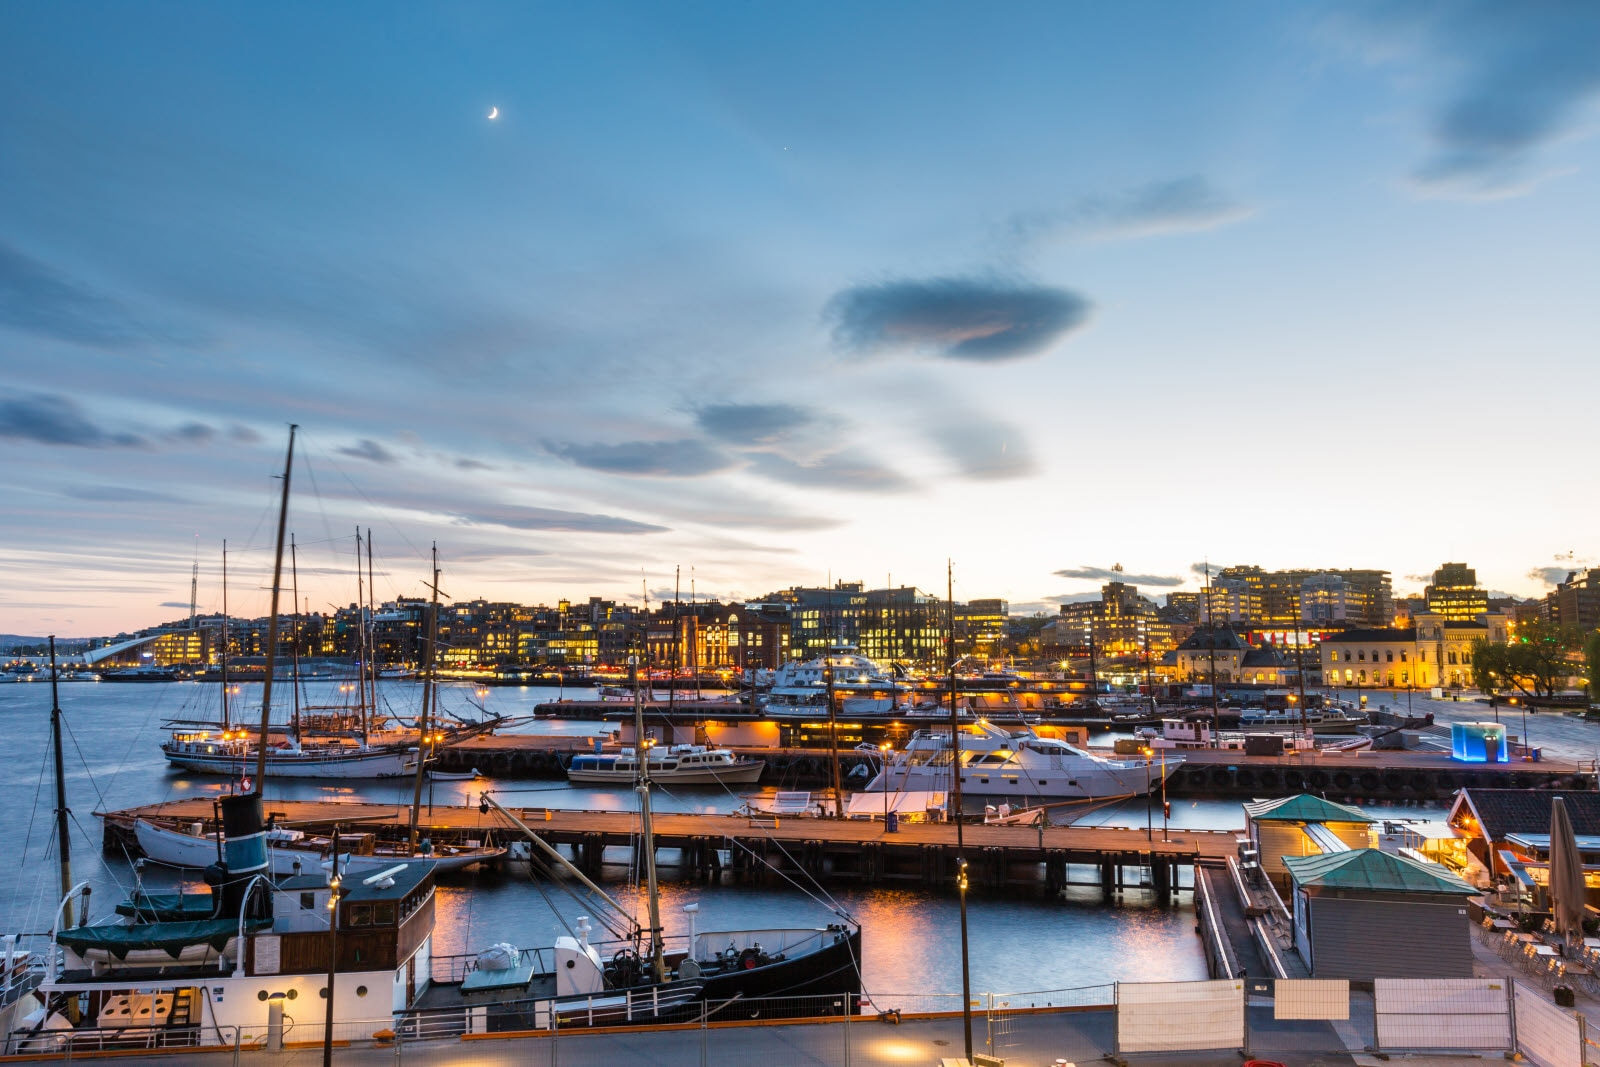 Oslo harbour with boats and yachts at twilight. There are both private and touristic boats, and on background some modern buildings.